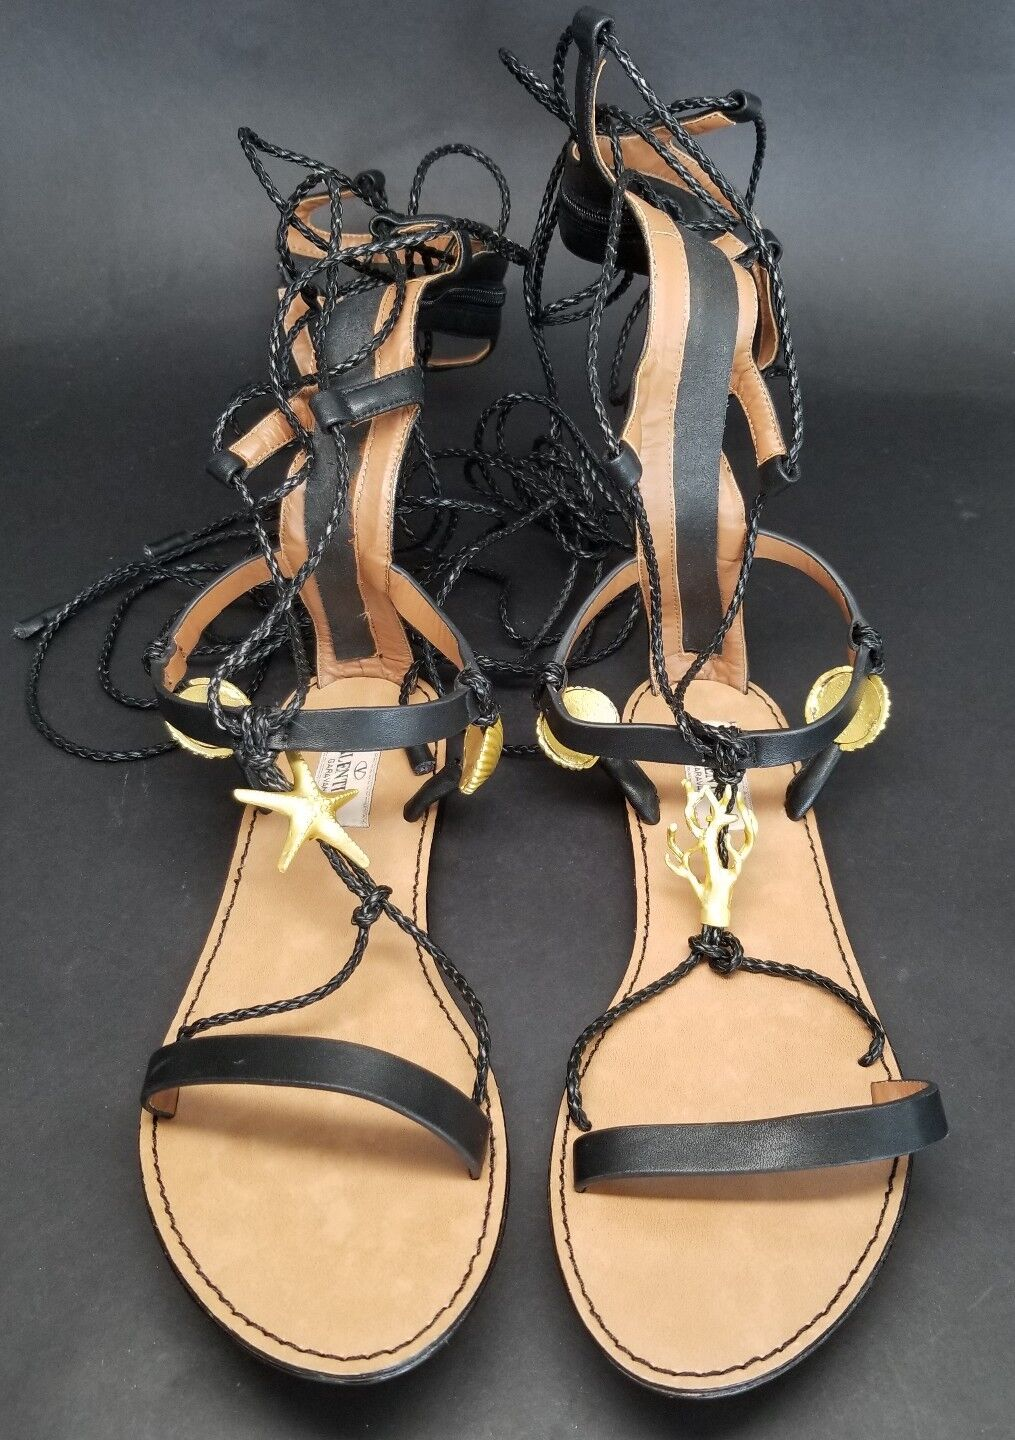 Valentino Gladiator Knee High Lace Up Sandals SEA ELEMENTS STARFISH SHELLS sz 36